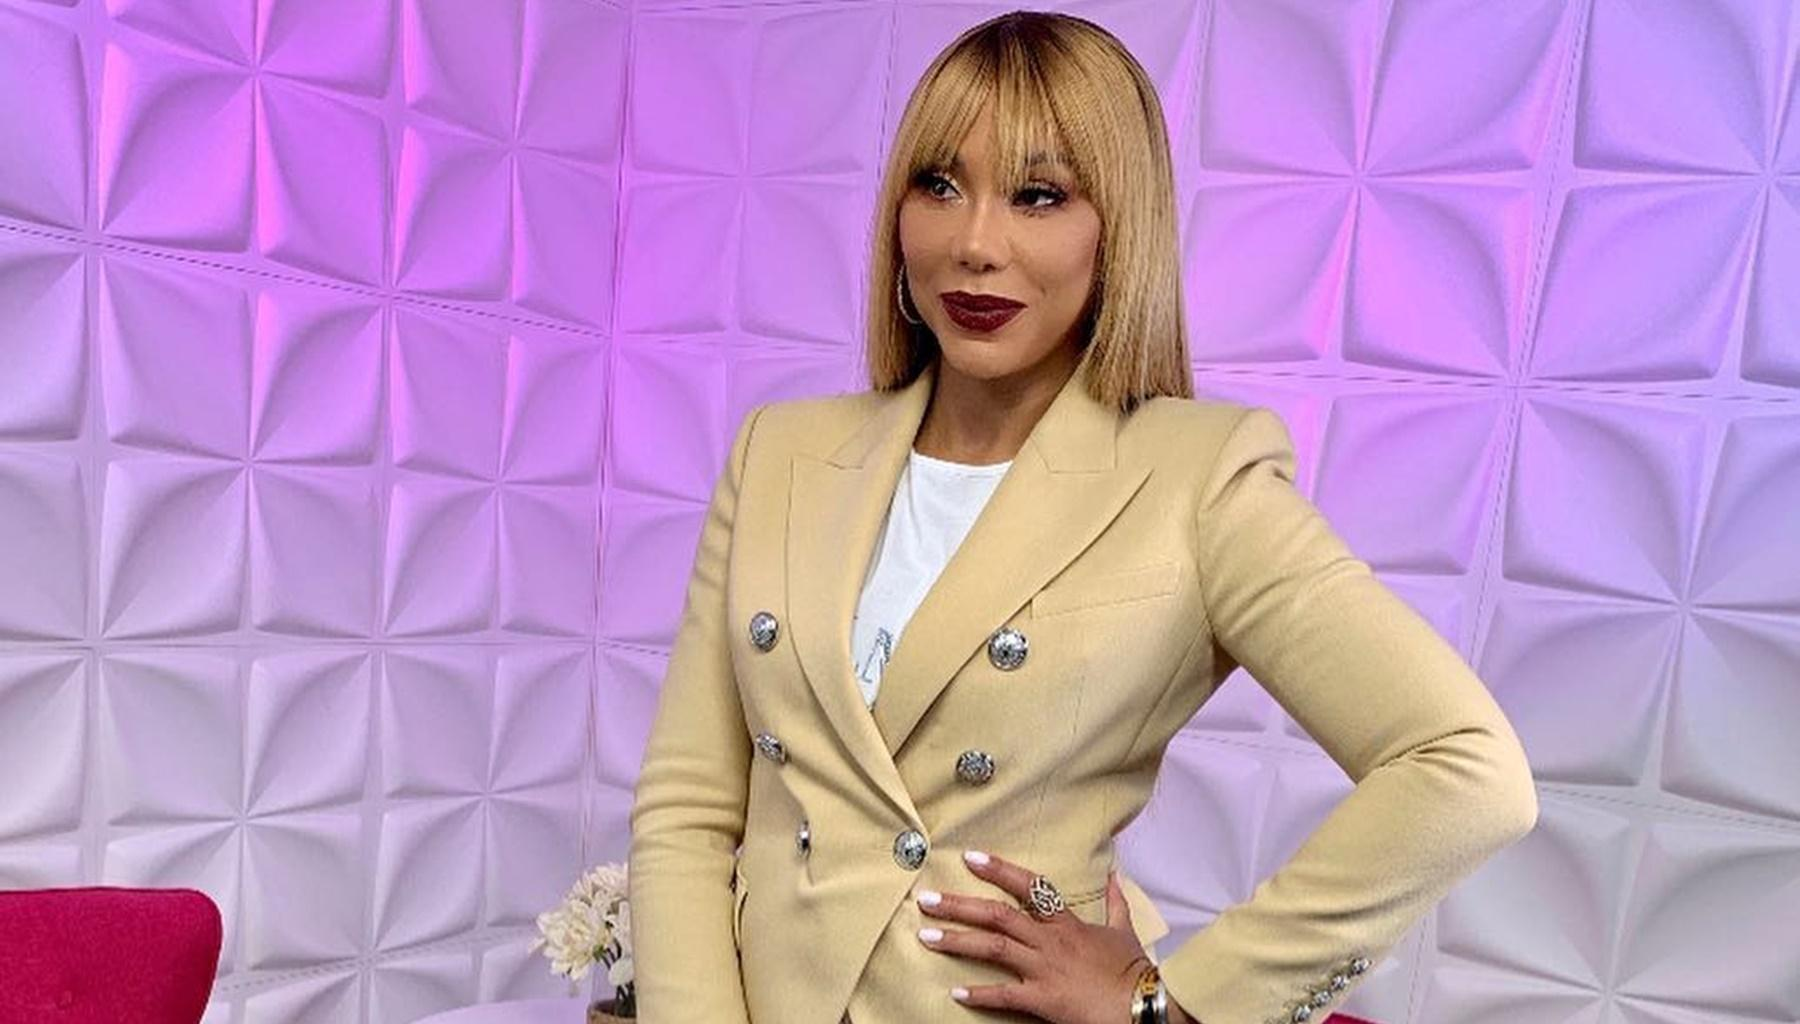 Tamar Braxton Pens Heartfelt Apology To One Of Her Sisters After Slamming Producers For Making Her Look Crazy On 'Braxton Family Values'